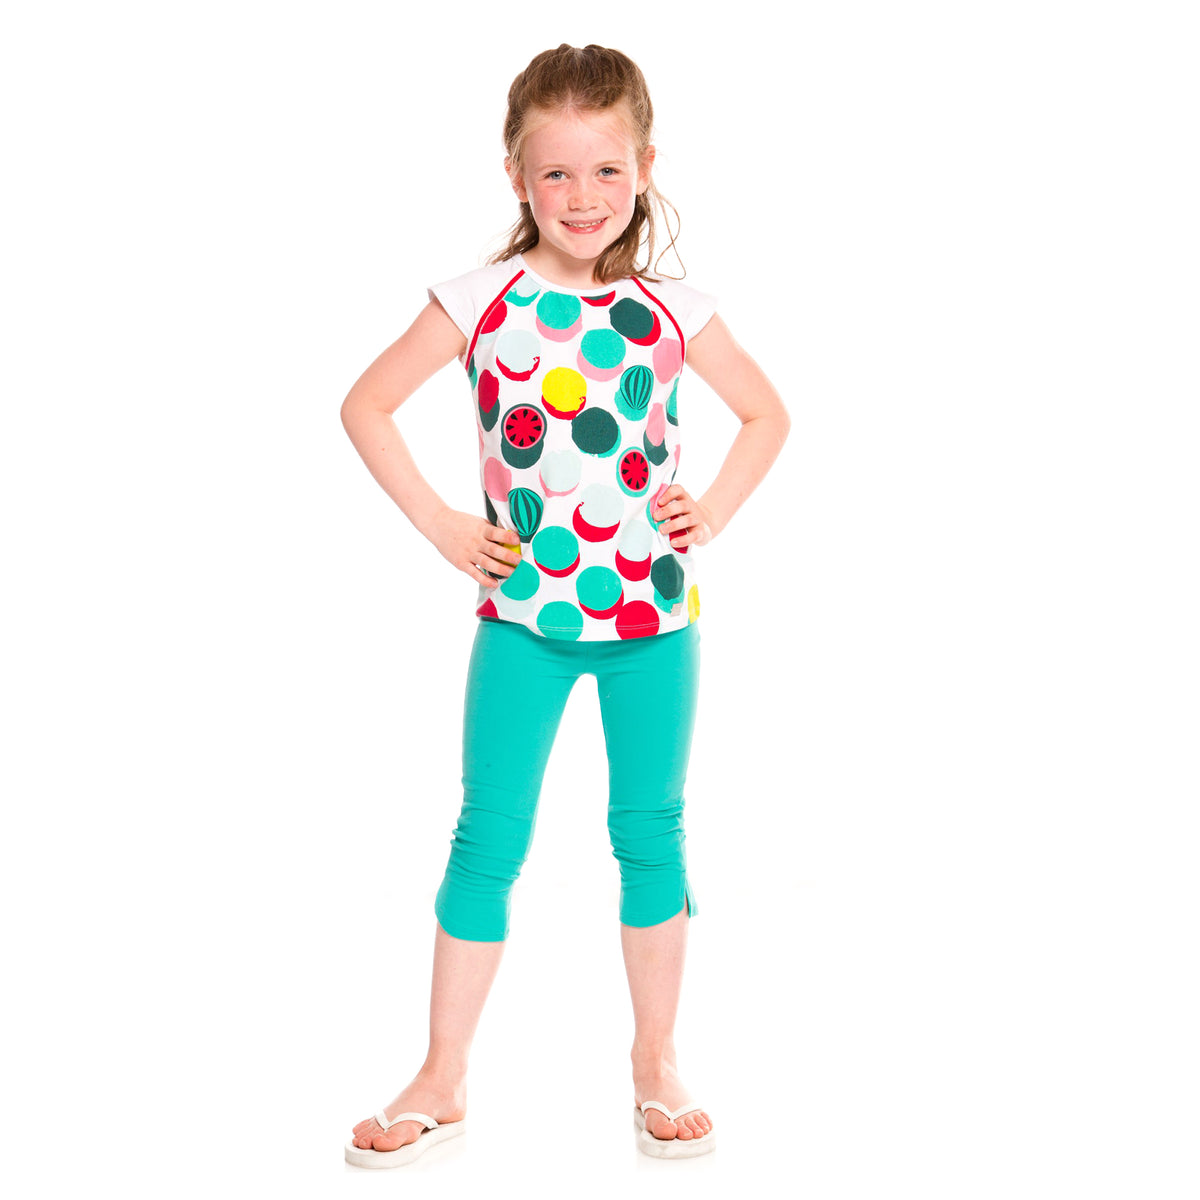 Girls White T-Shirt With Watermelon Polka Dots